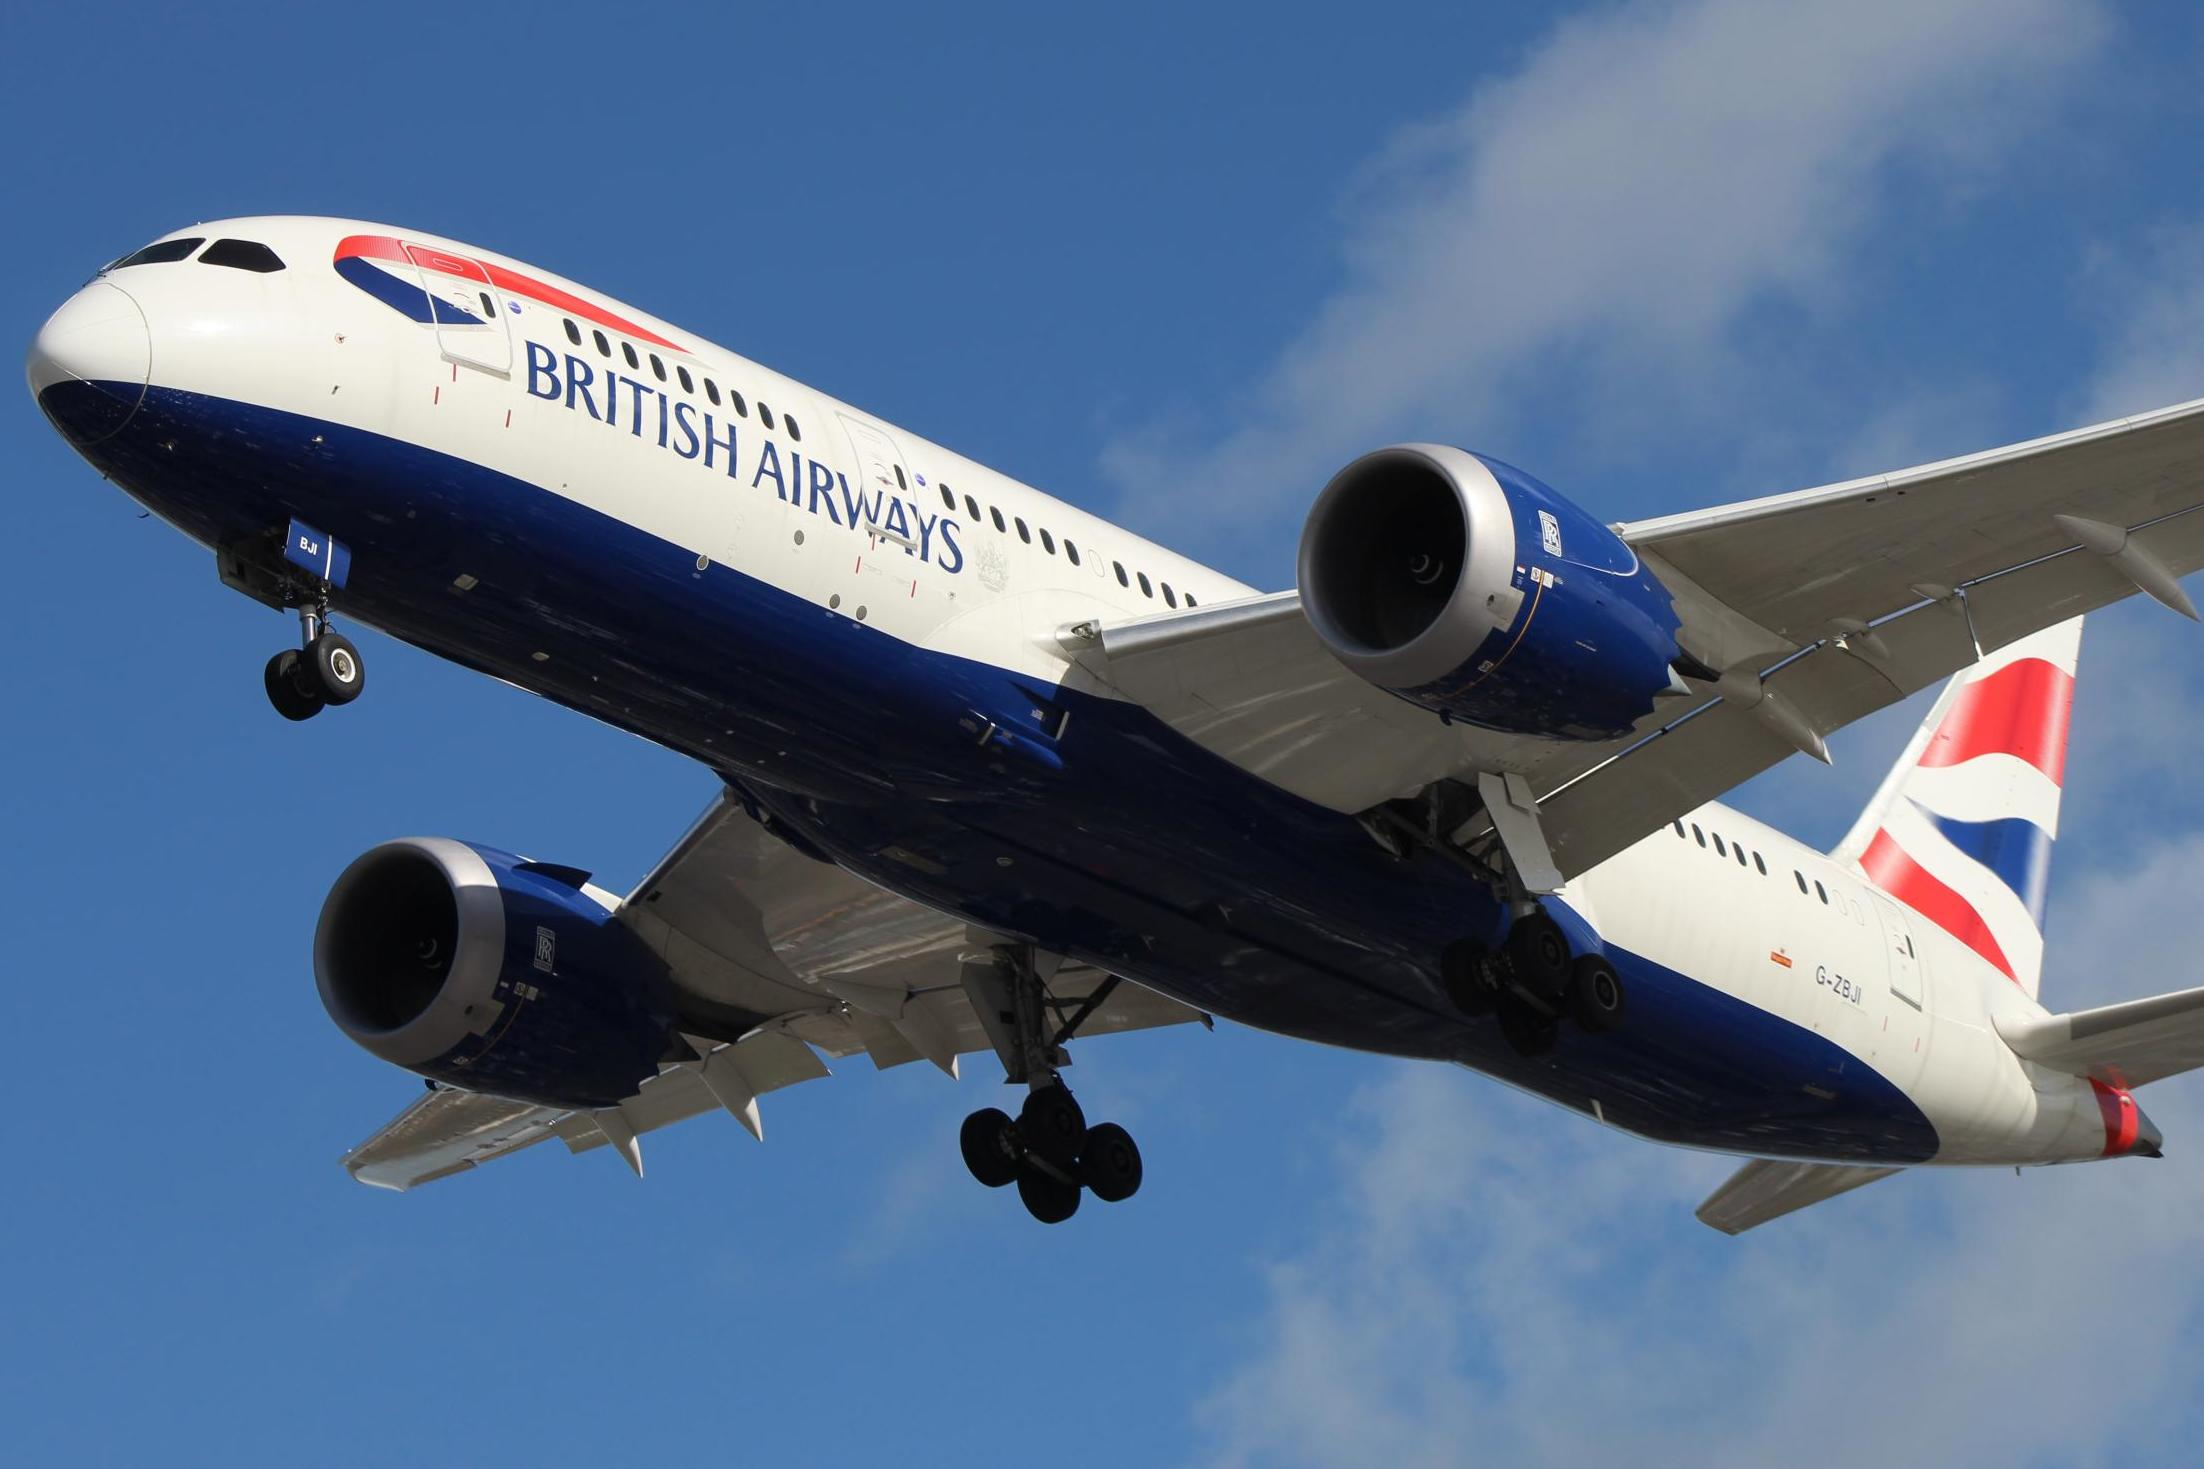 'It will be epic': British Airways releases optimistic message to Britain as flights dwindle